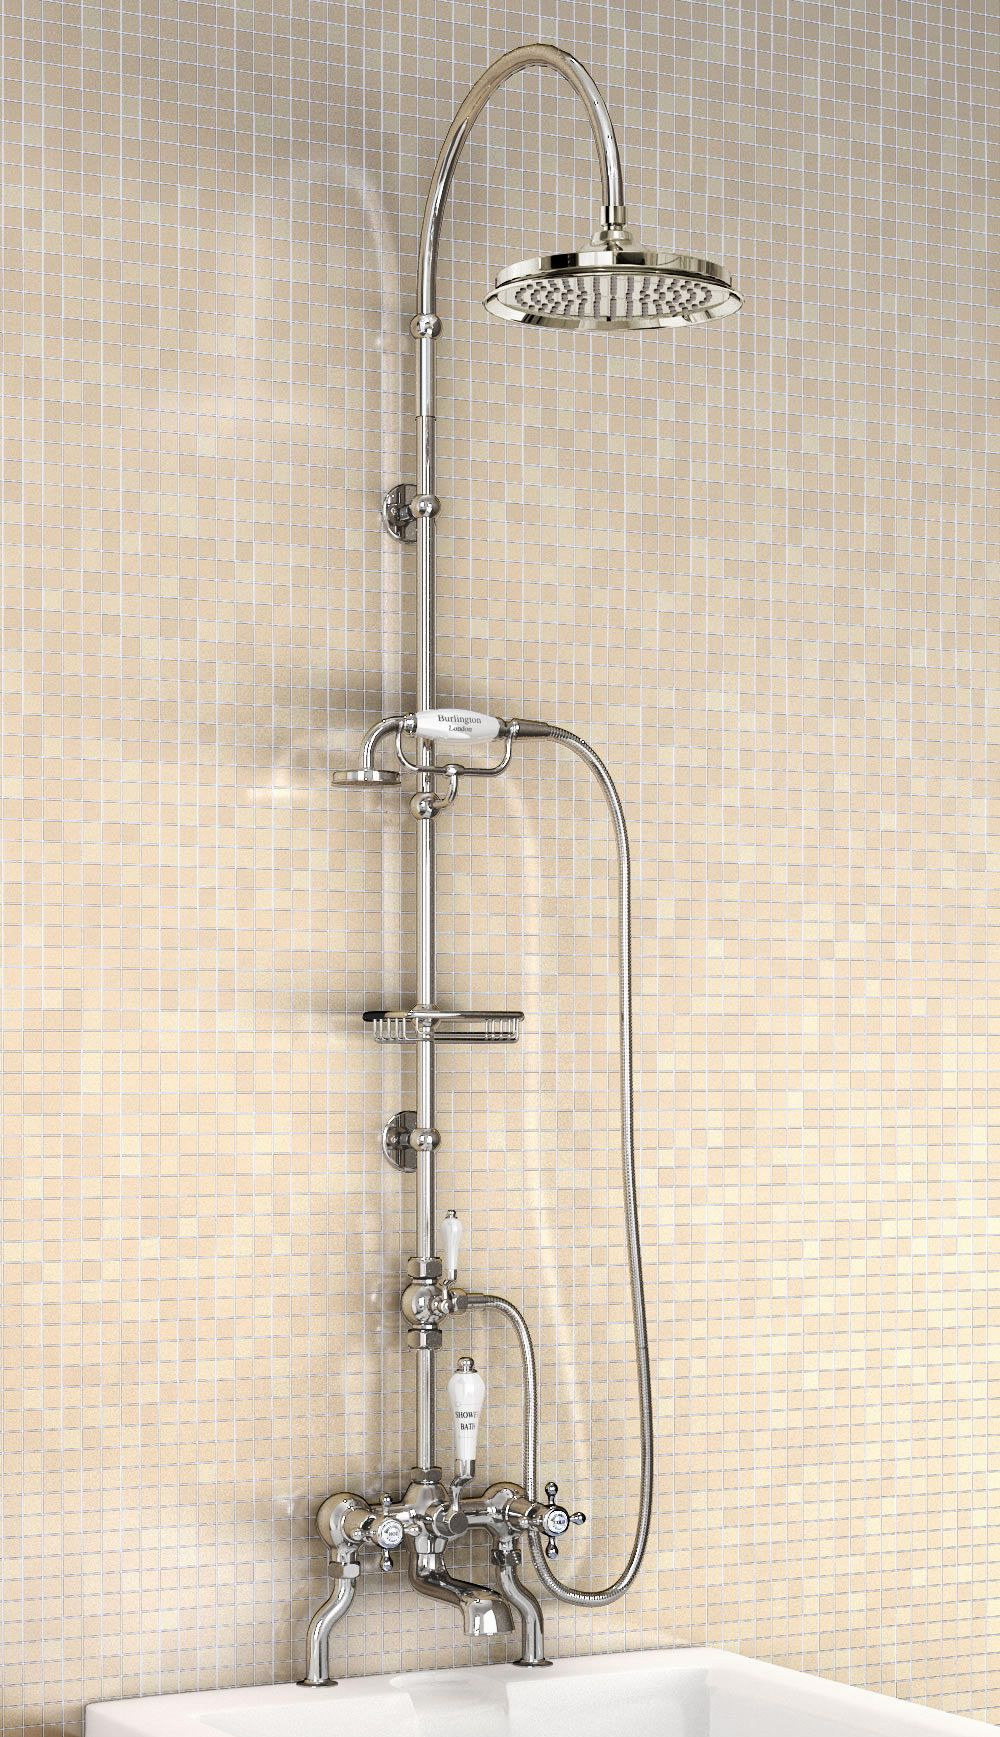 Shower Bath Taps Combined burlington bath shower mixer with rigid riser-curved arm and 9 inch